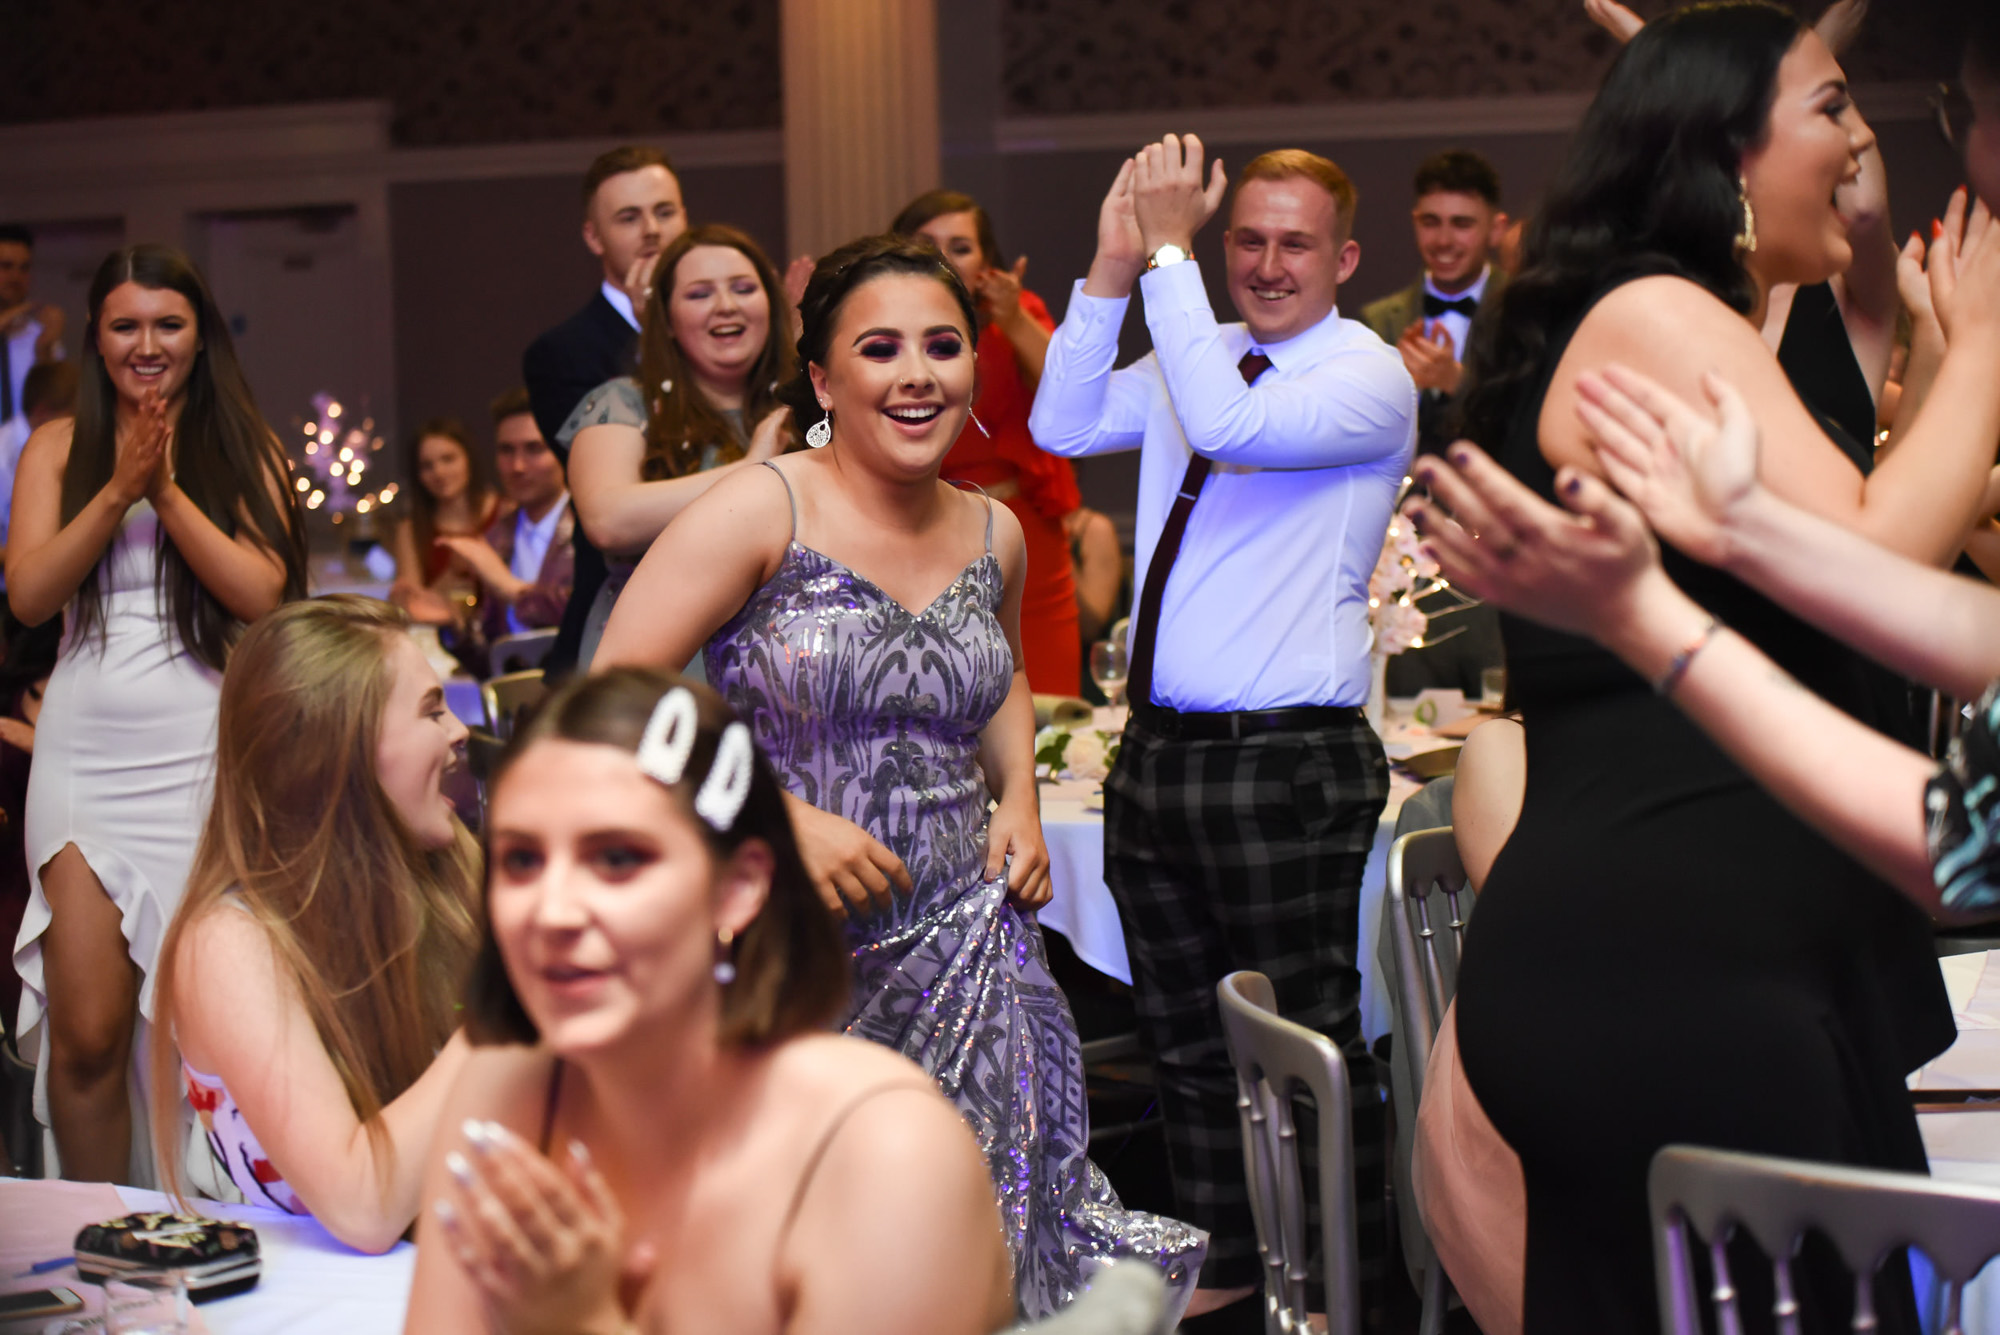 UCLAN_MT_BALL_2019_402.jpg